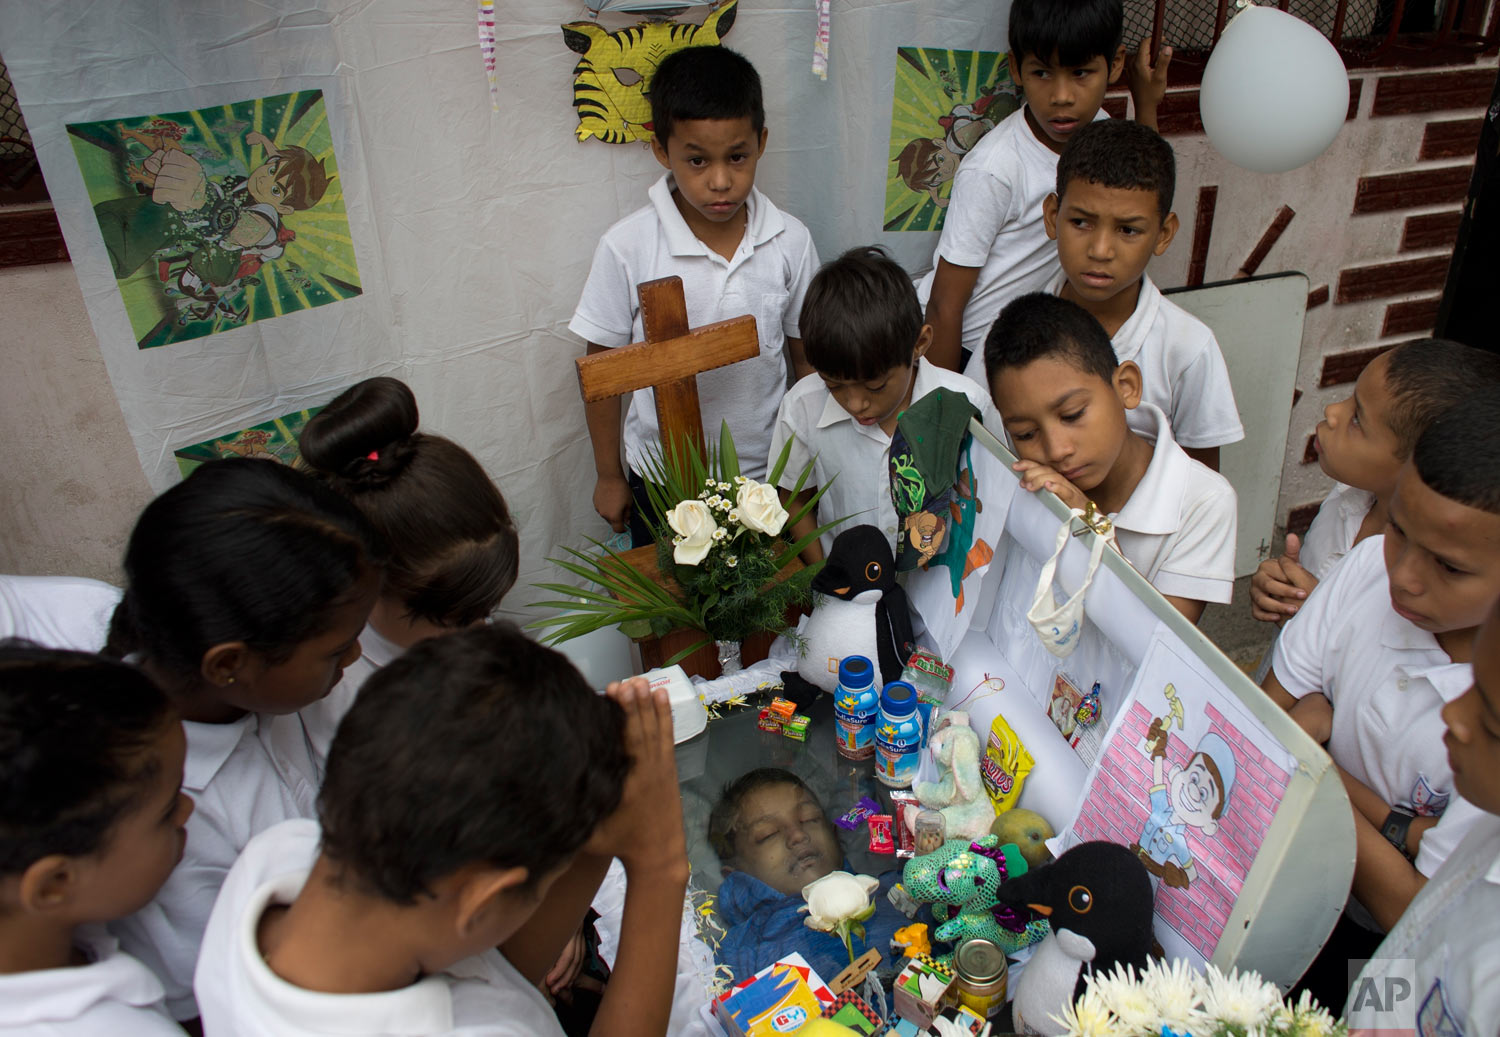 Classmates of 11-year-old Erick Altuve gather around his casket during an outdoor wake near his home in the Petare shantytown of Caracas, Venezuela, Wednesday, May 29, 2019. Erick died on May 26 while he was waiting for a bone marrow transplant. (AP Photo/Ariana Cubillos)